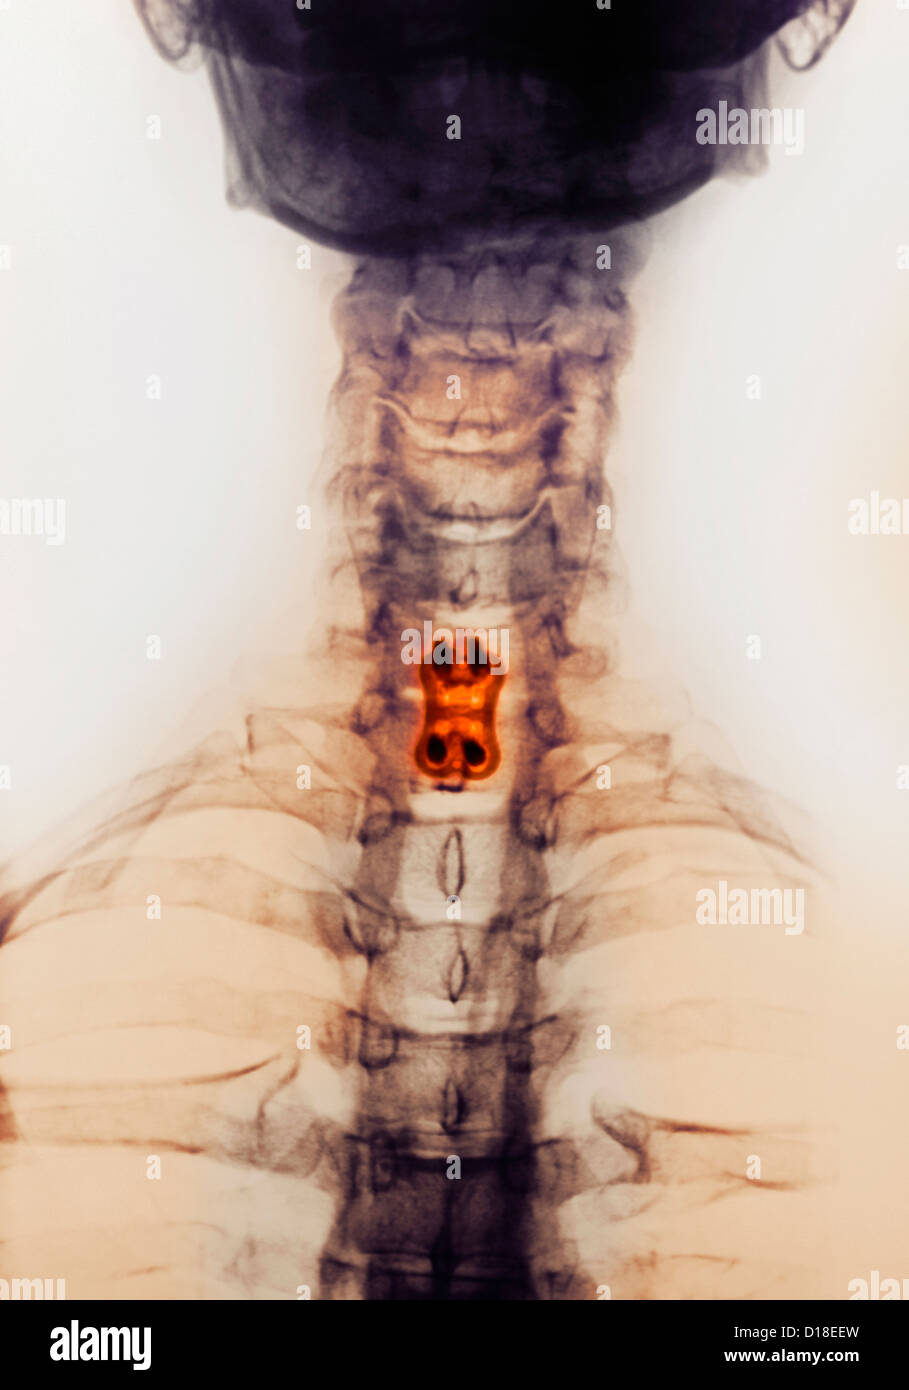 Cervical spine xray, spinal fusion, screws, plate - Stock Image